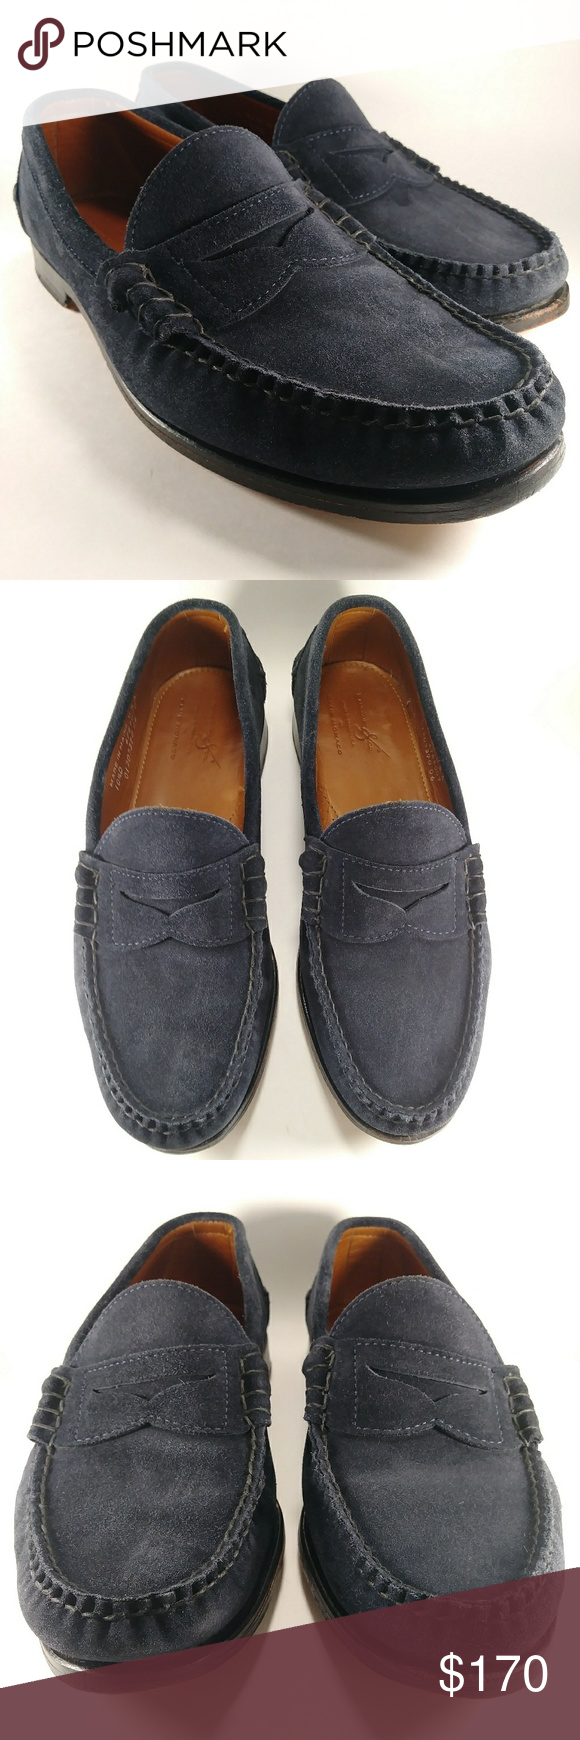 b4243c821d7 Rancourt Blue Suede Beefroll Penny Loafer 10.5D Rancourt   Co Club Monaco  (collab)